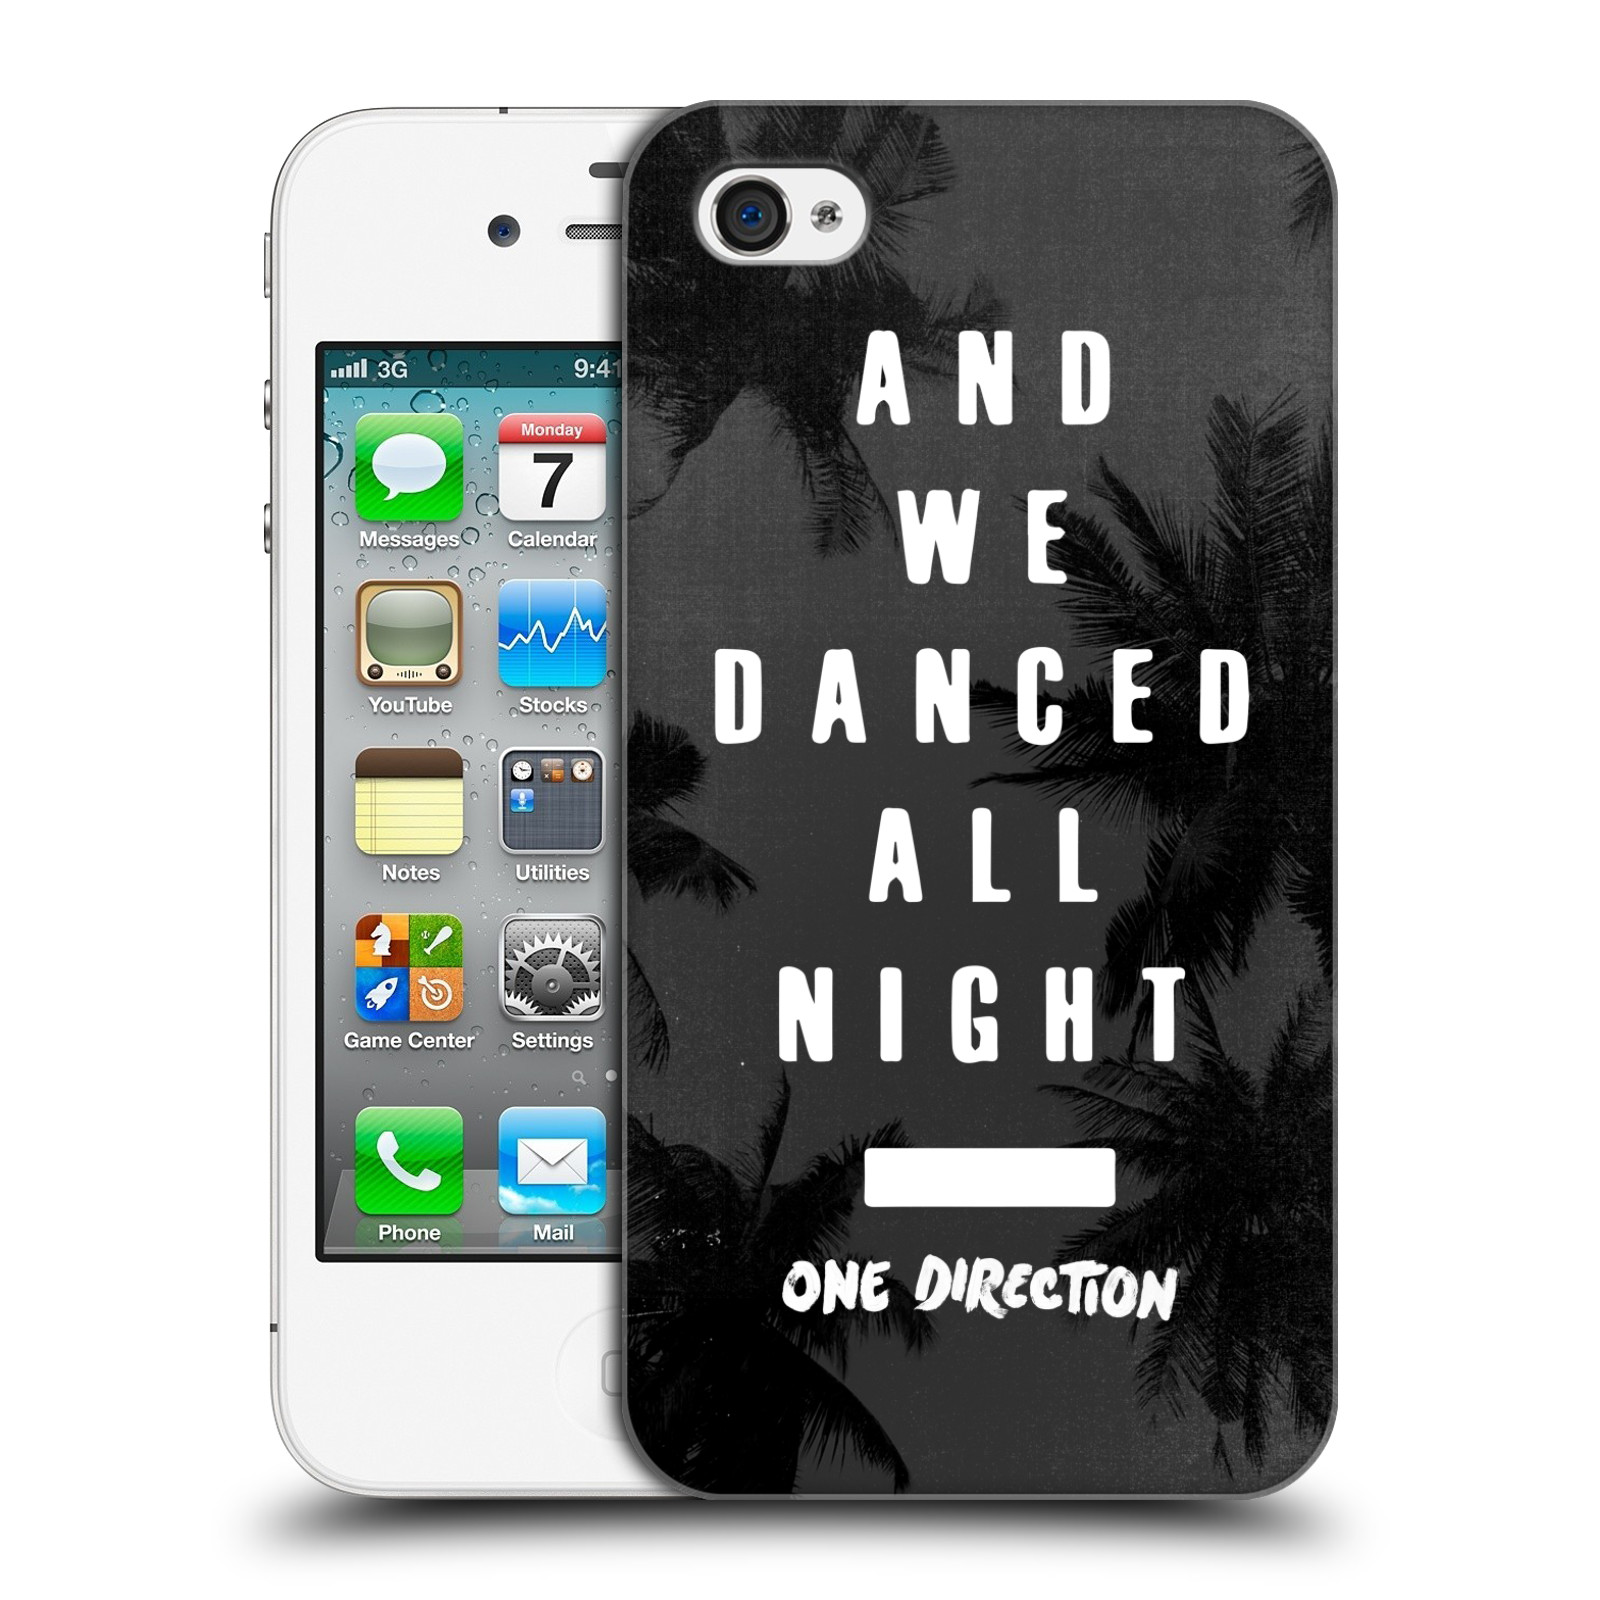 Ufficiale-One-Direction-1D-danced-all-night-HARD-BACK-CASE-per-APPLE-IPHONE-4S